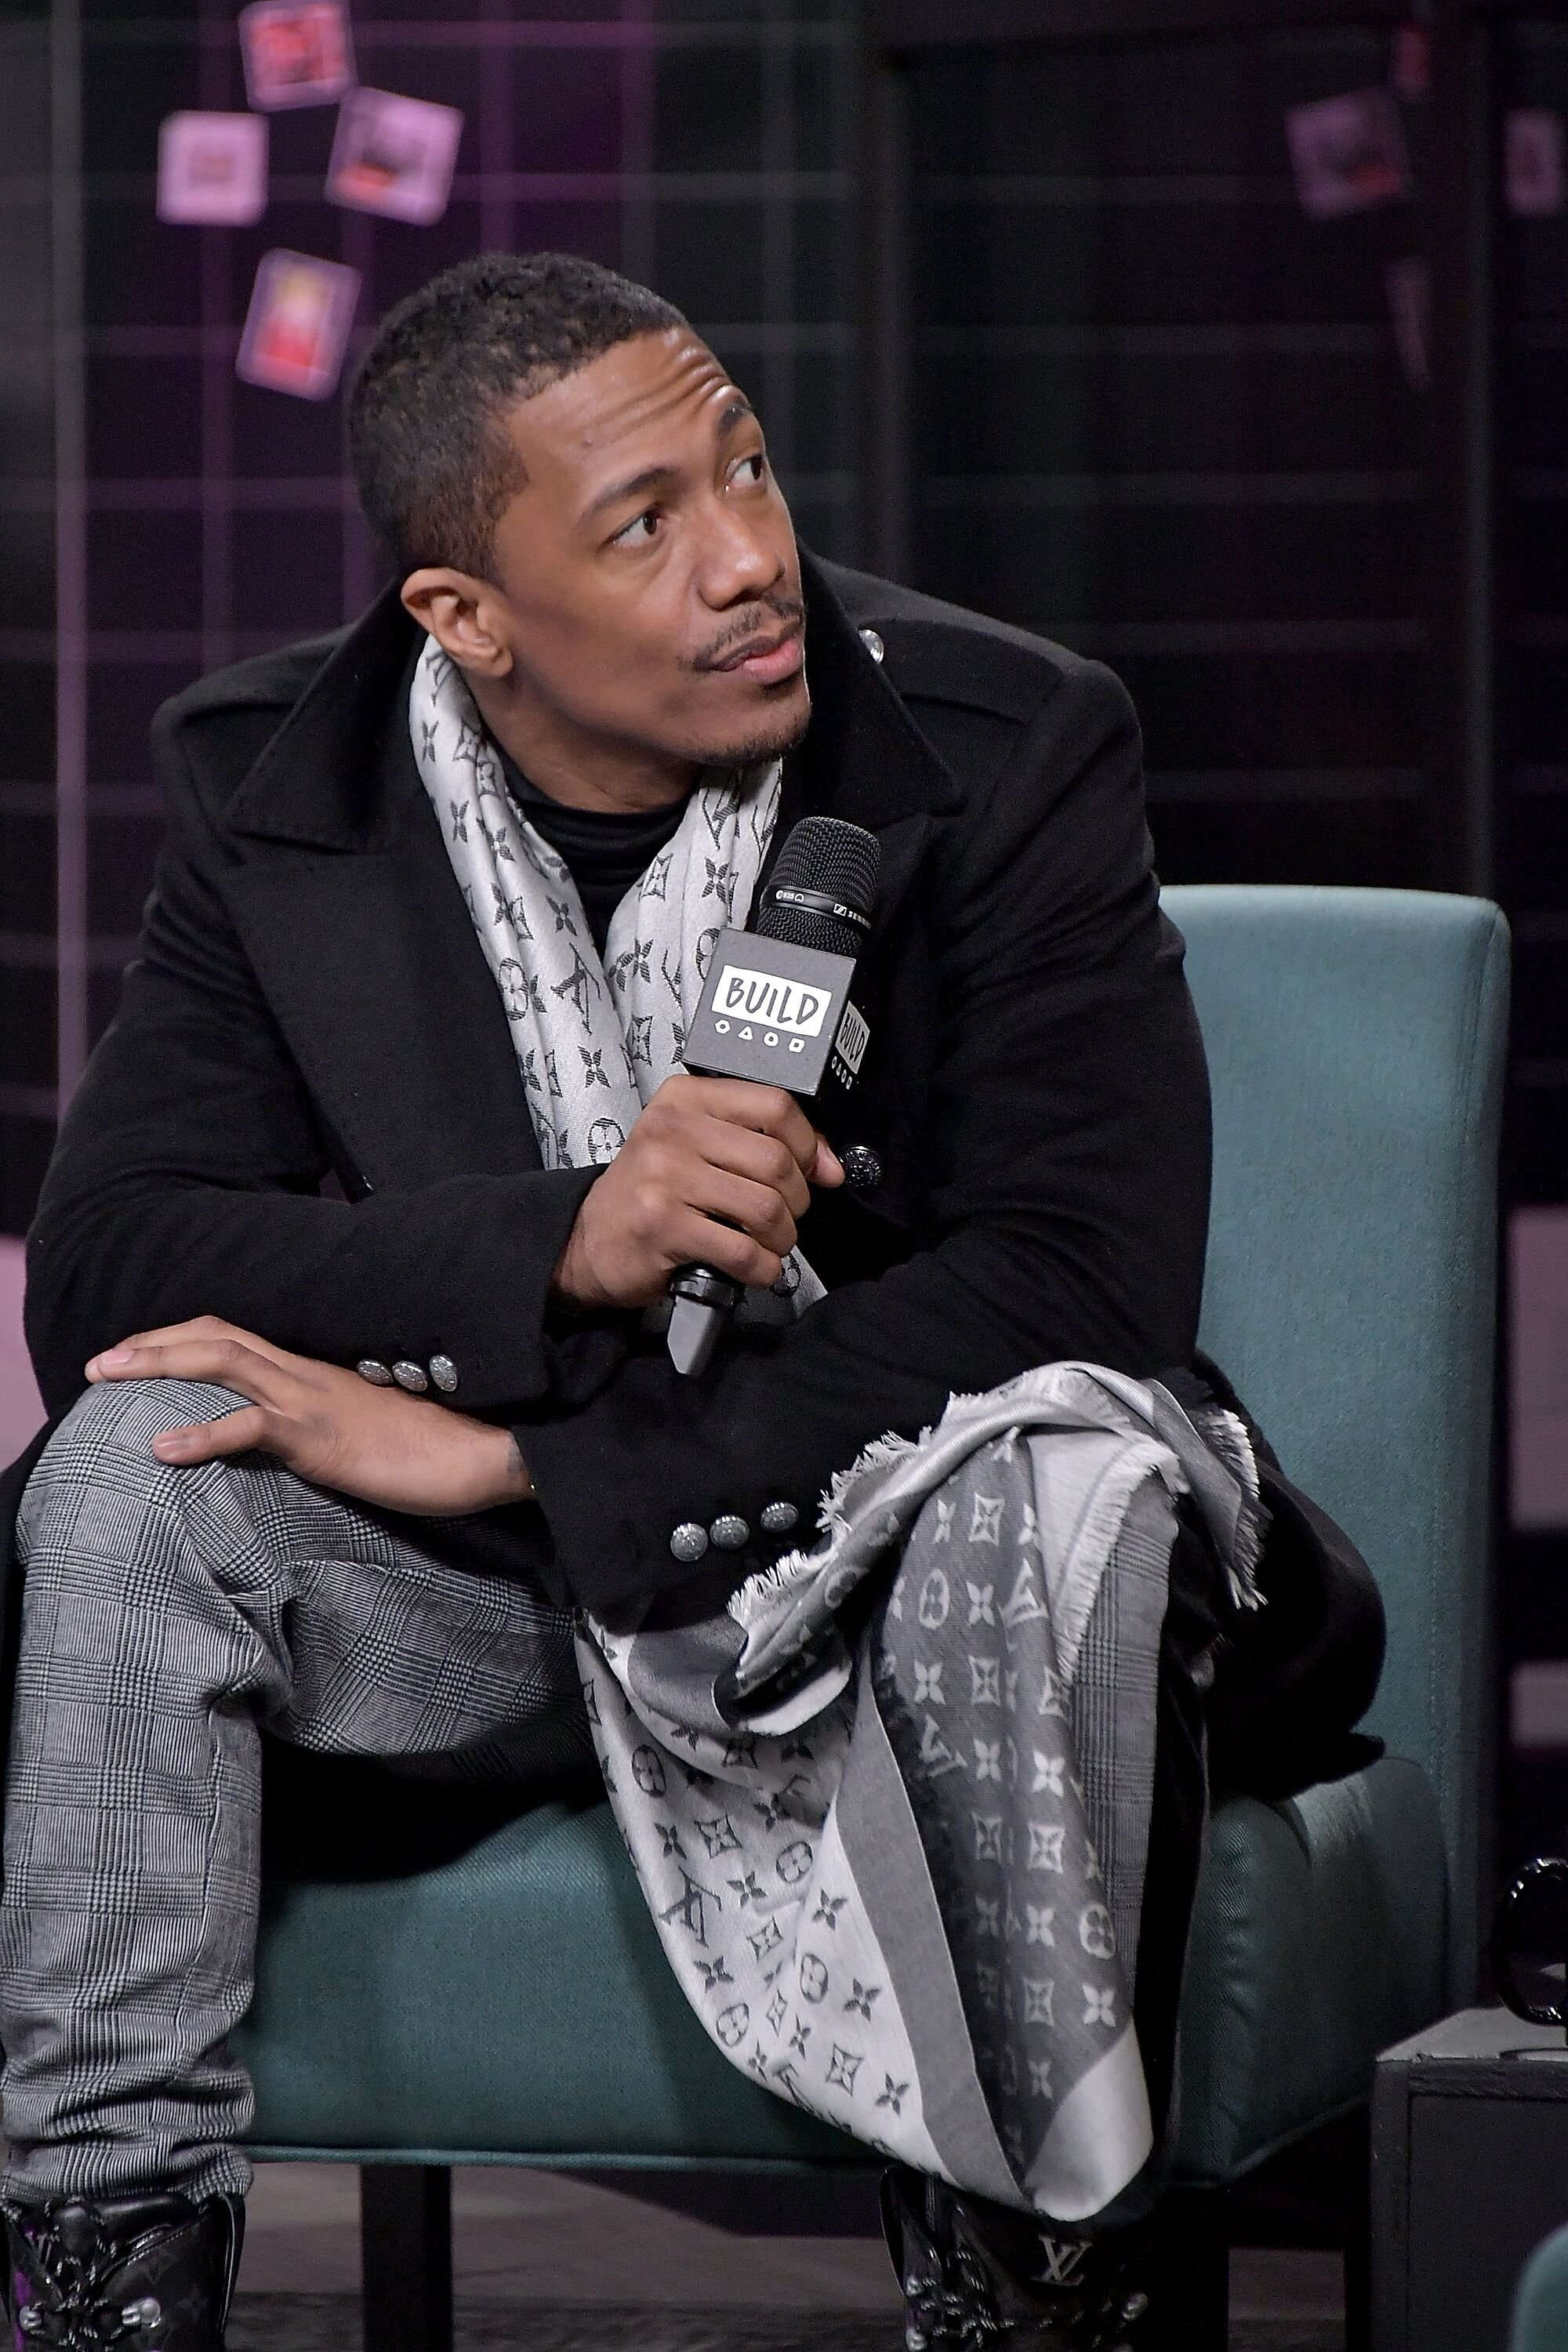 Nick Cannon at one of his speaking engagements | Source: Getty Images/GlobalImagesUkraine